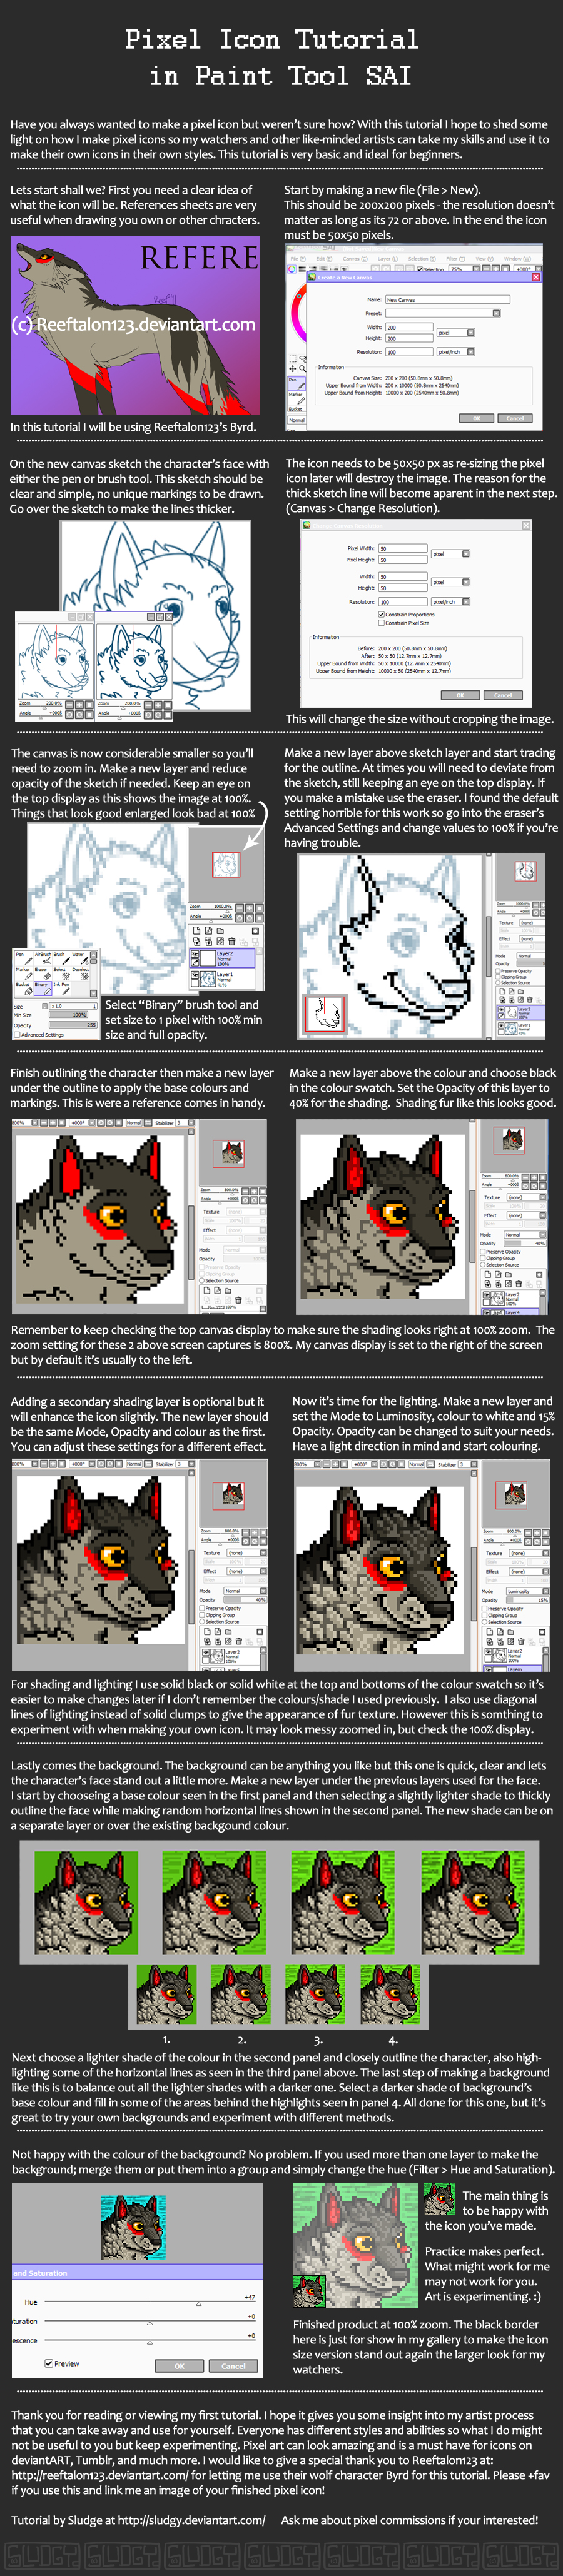 Pixel Icon Tutorial In Paint Tool Sai By Sludgy